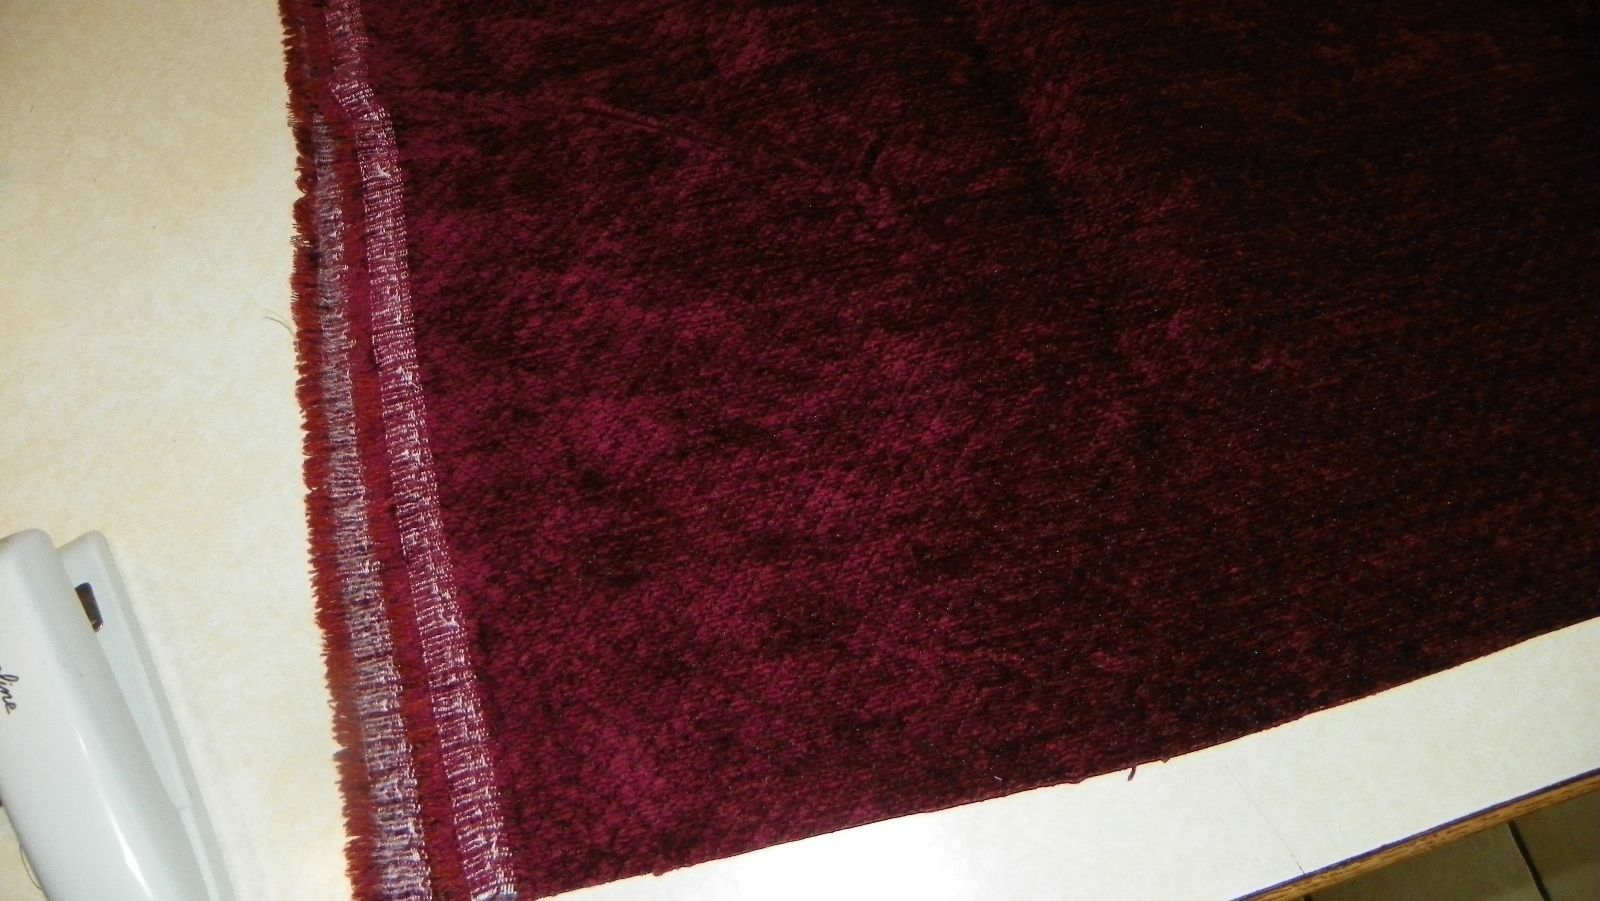 Burgundy Diamond Print Chenille Upholstery Fabric  1 Yard  R406